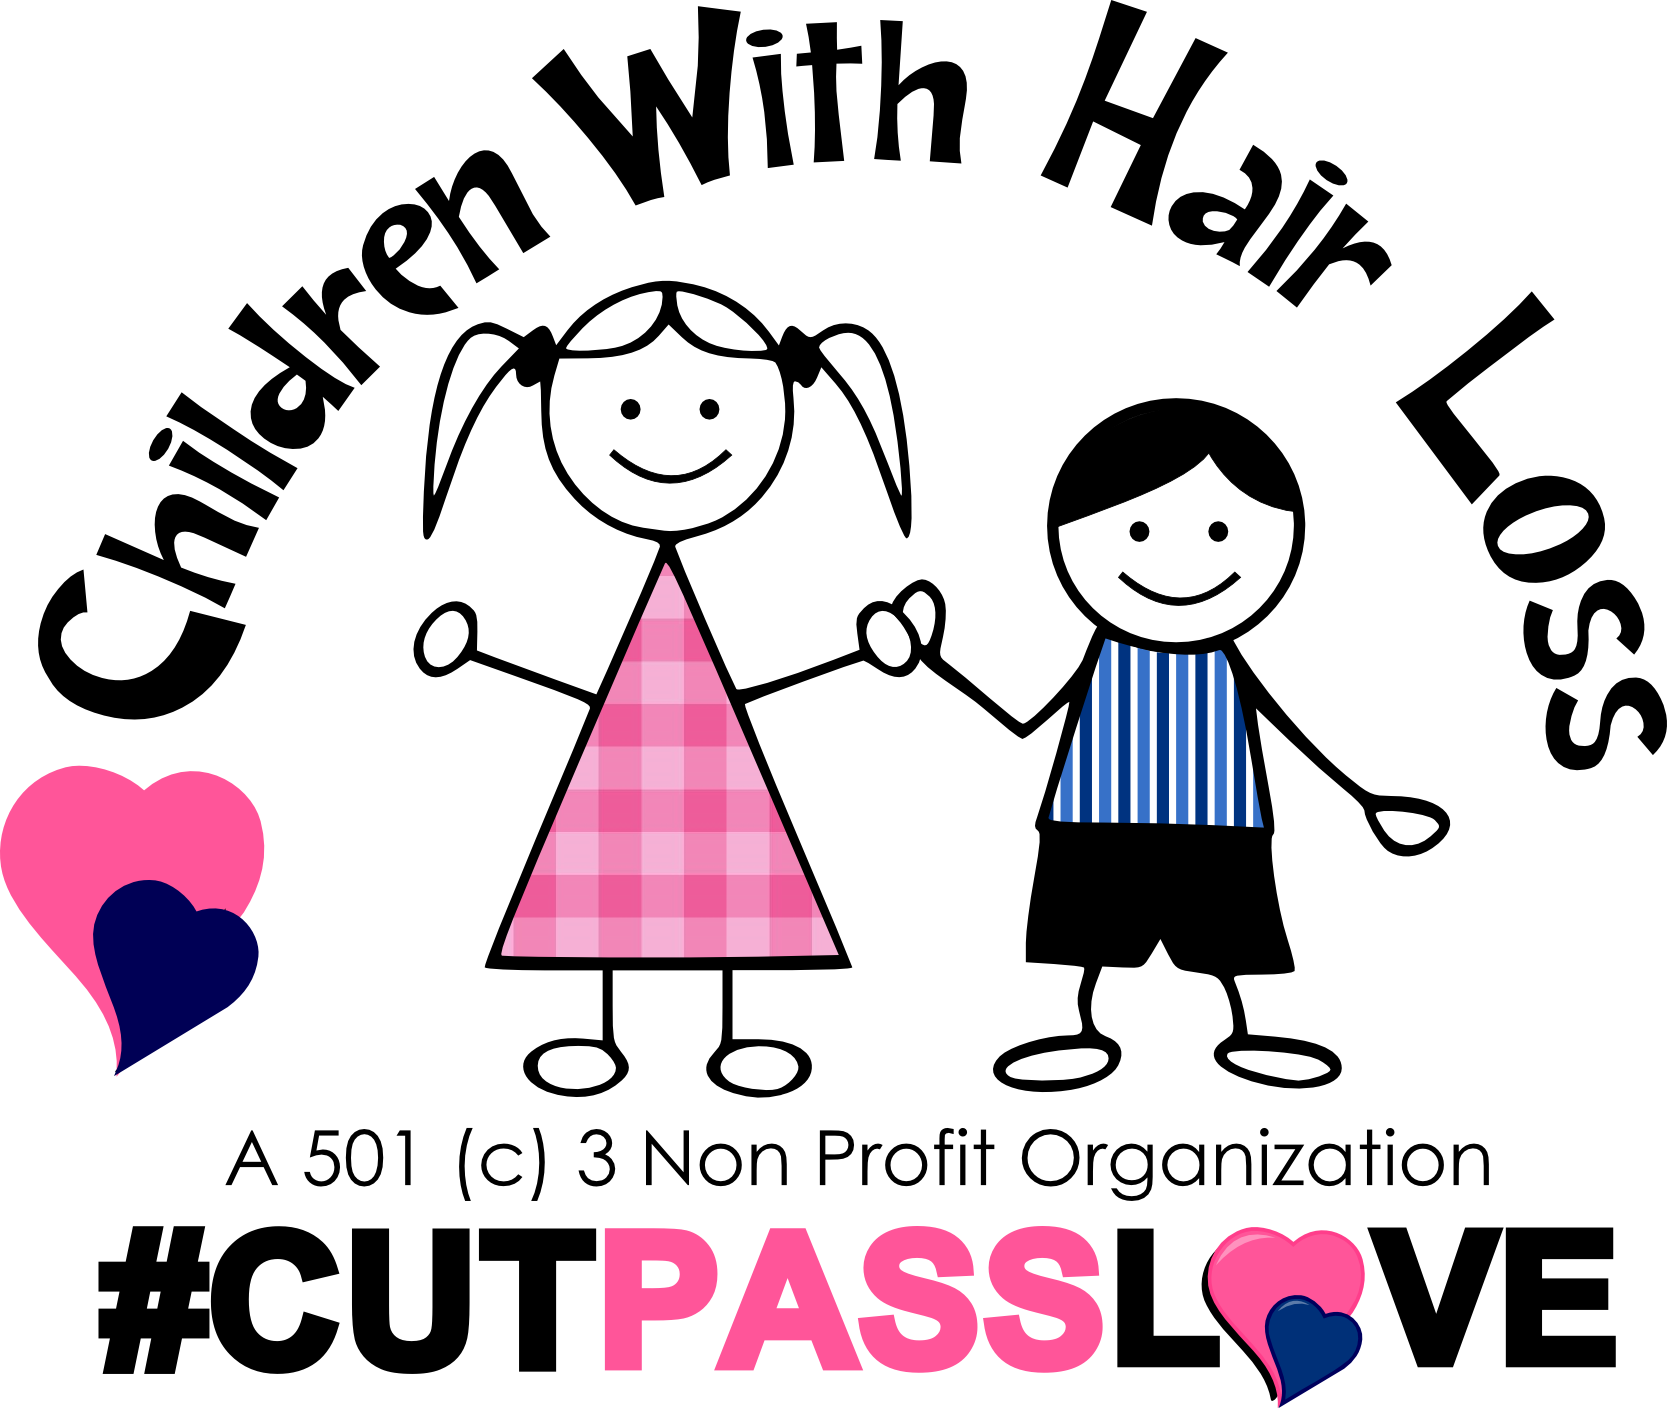 Worry clipart hair loss. Donate your children with